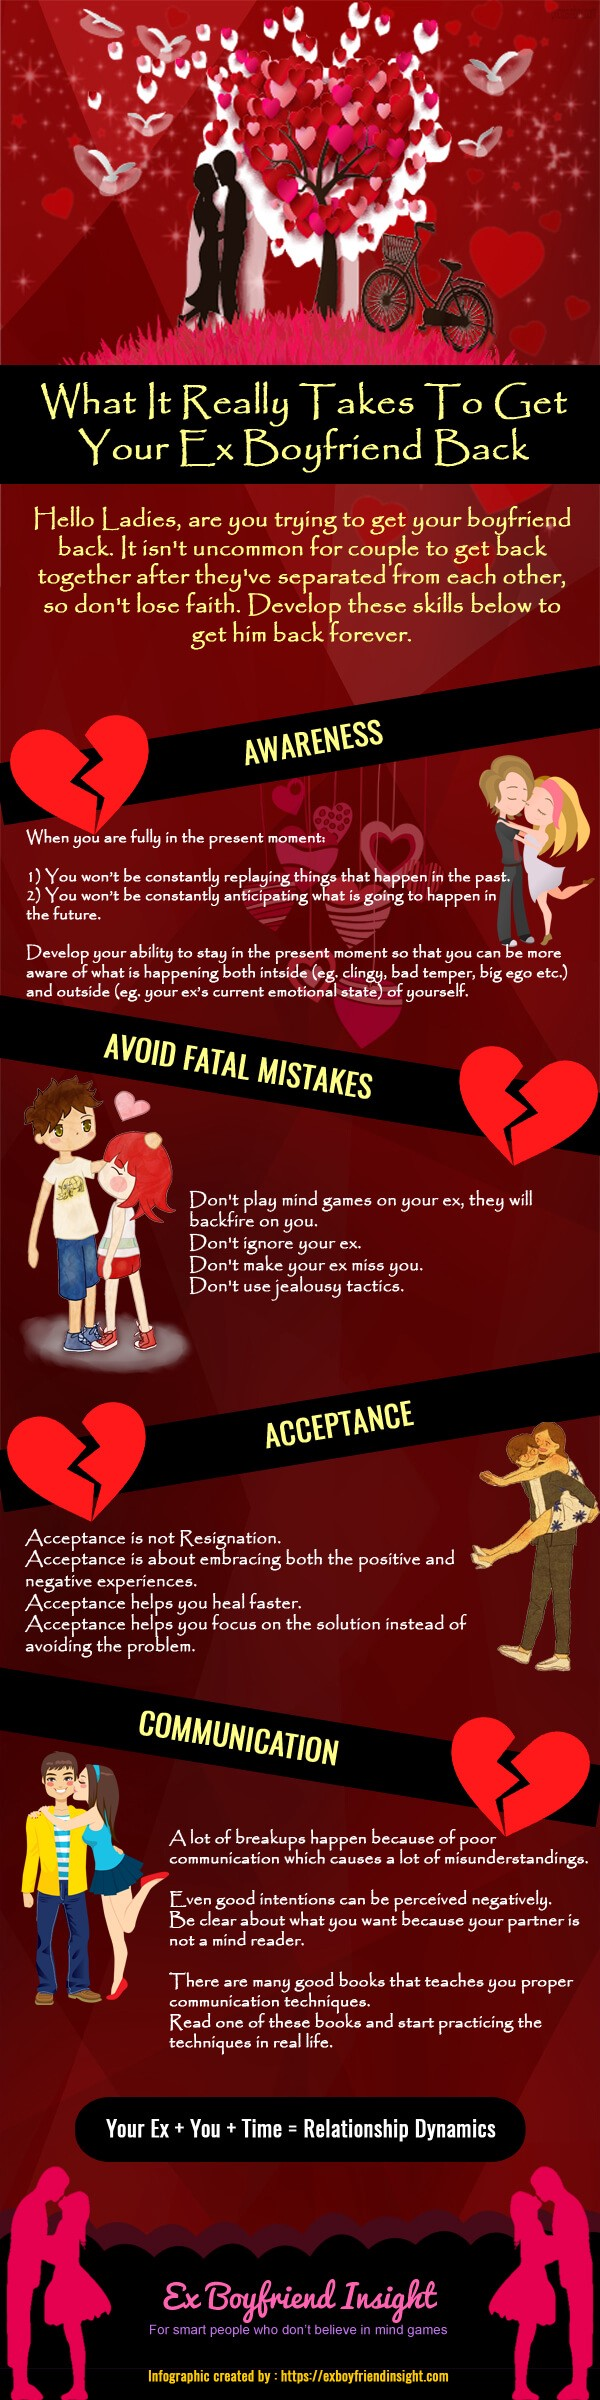 What It Really Takes To Get Your Ex Boyfriend Back [Infographic]